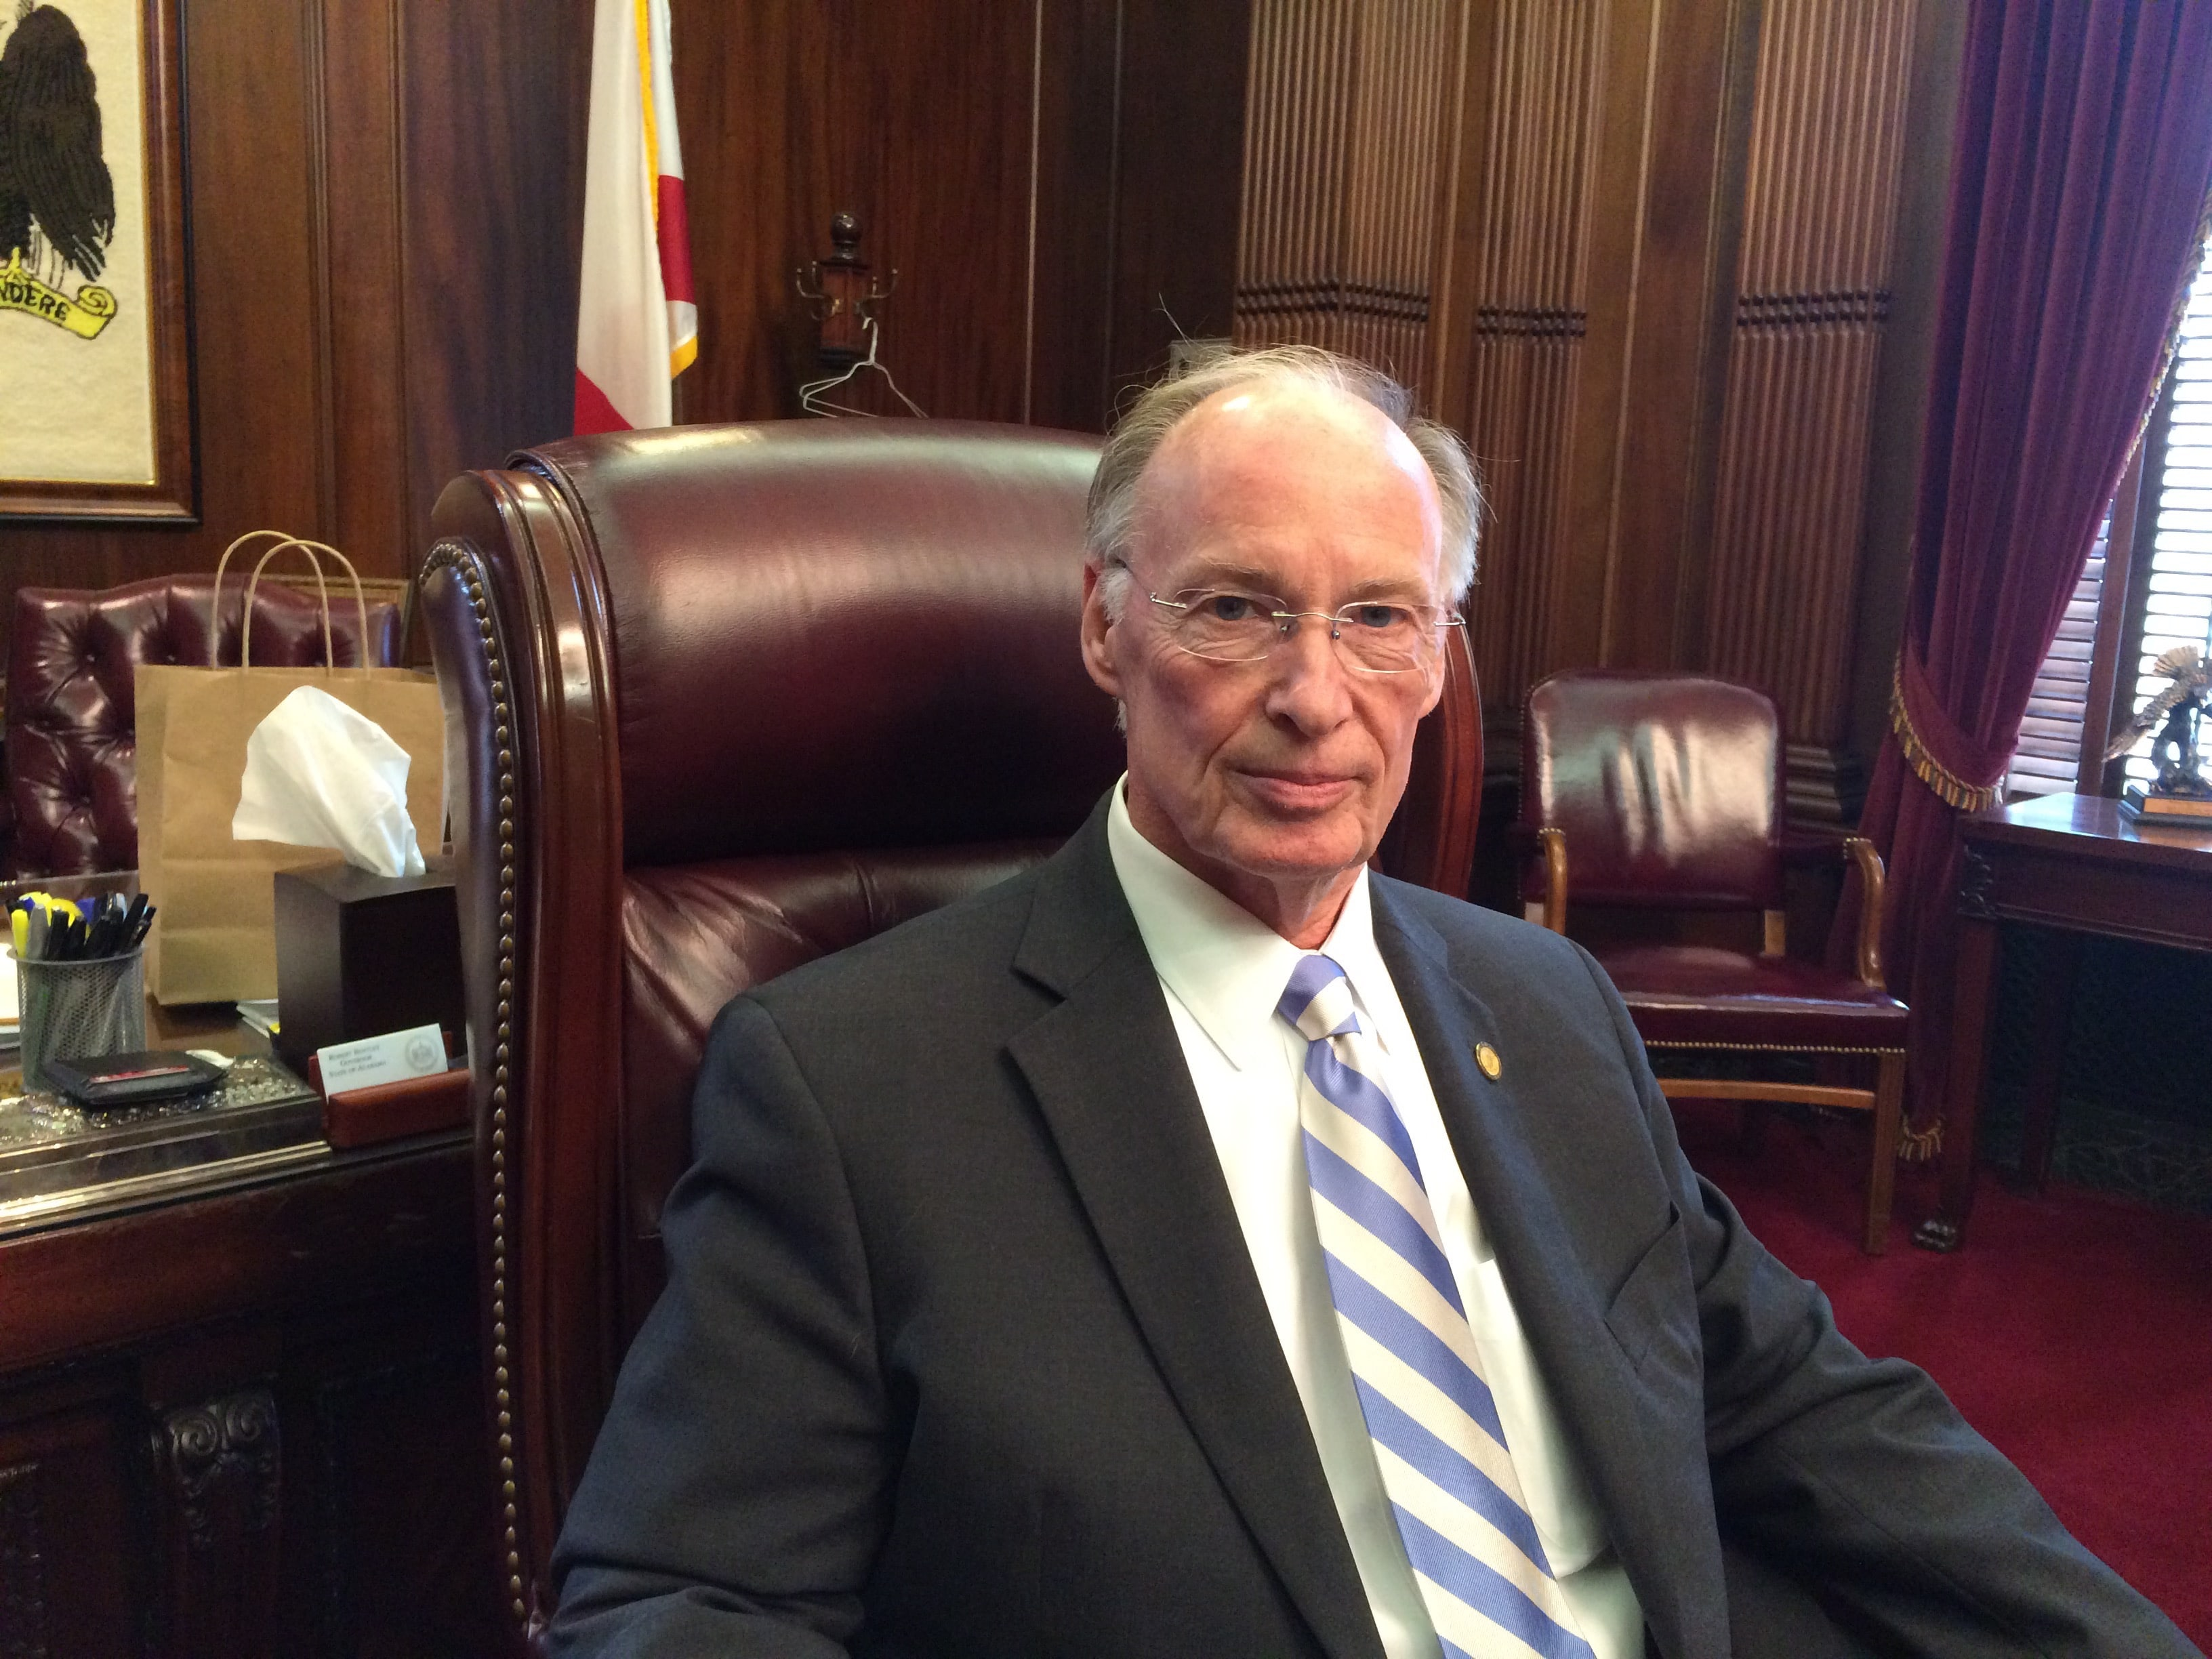 impeachment effort makes a lame duck governor weaker | wbhm 90.3